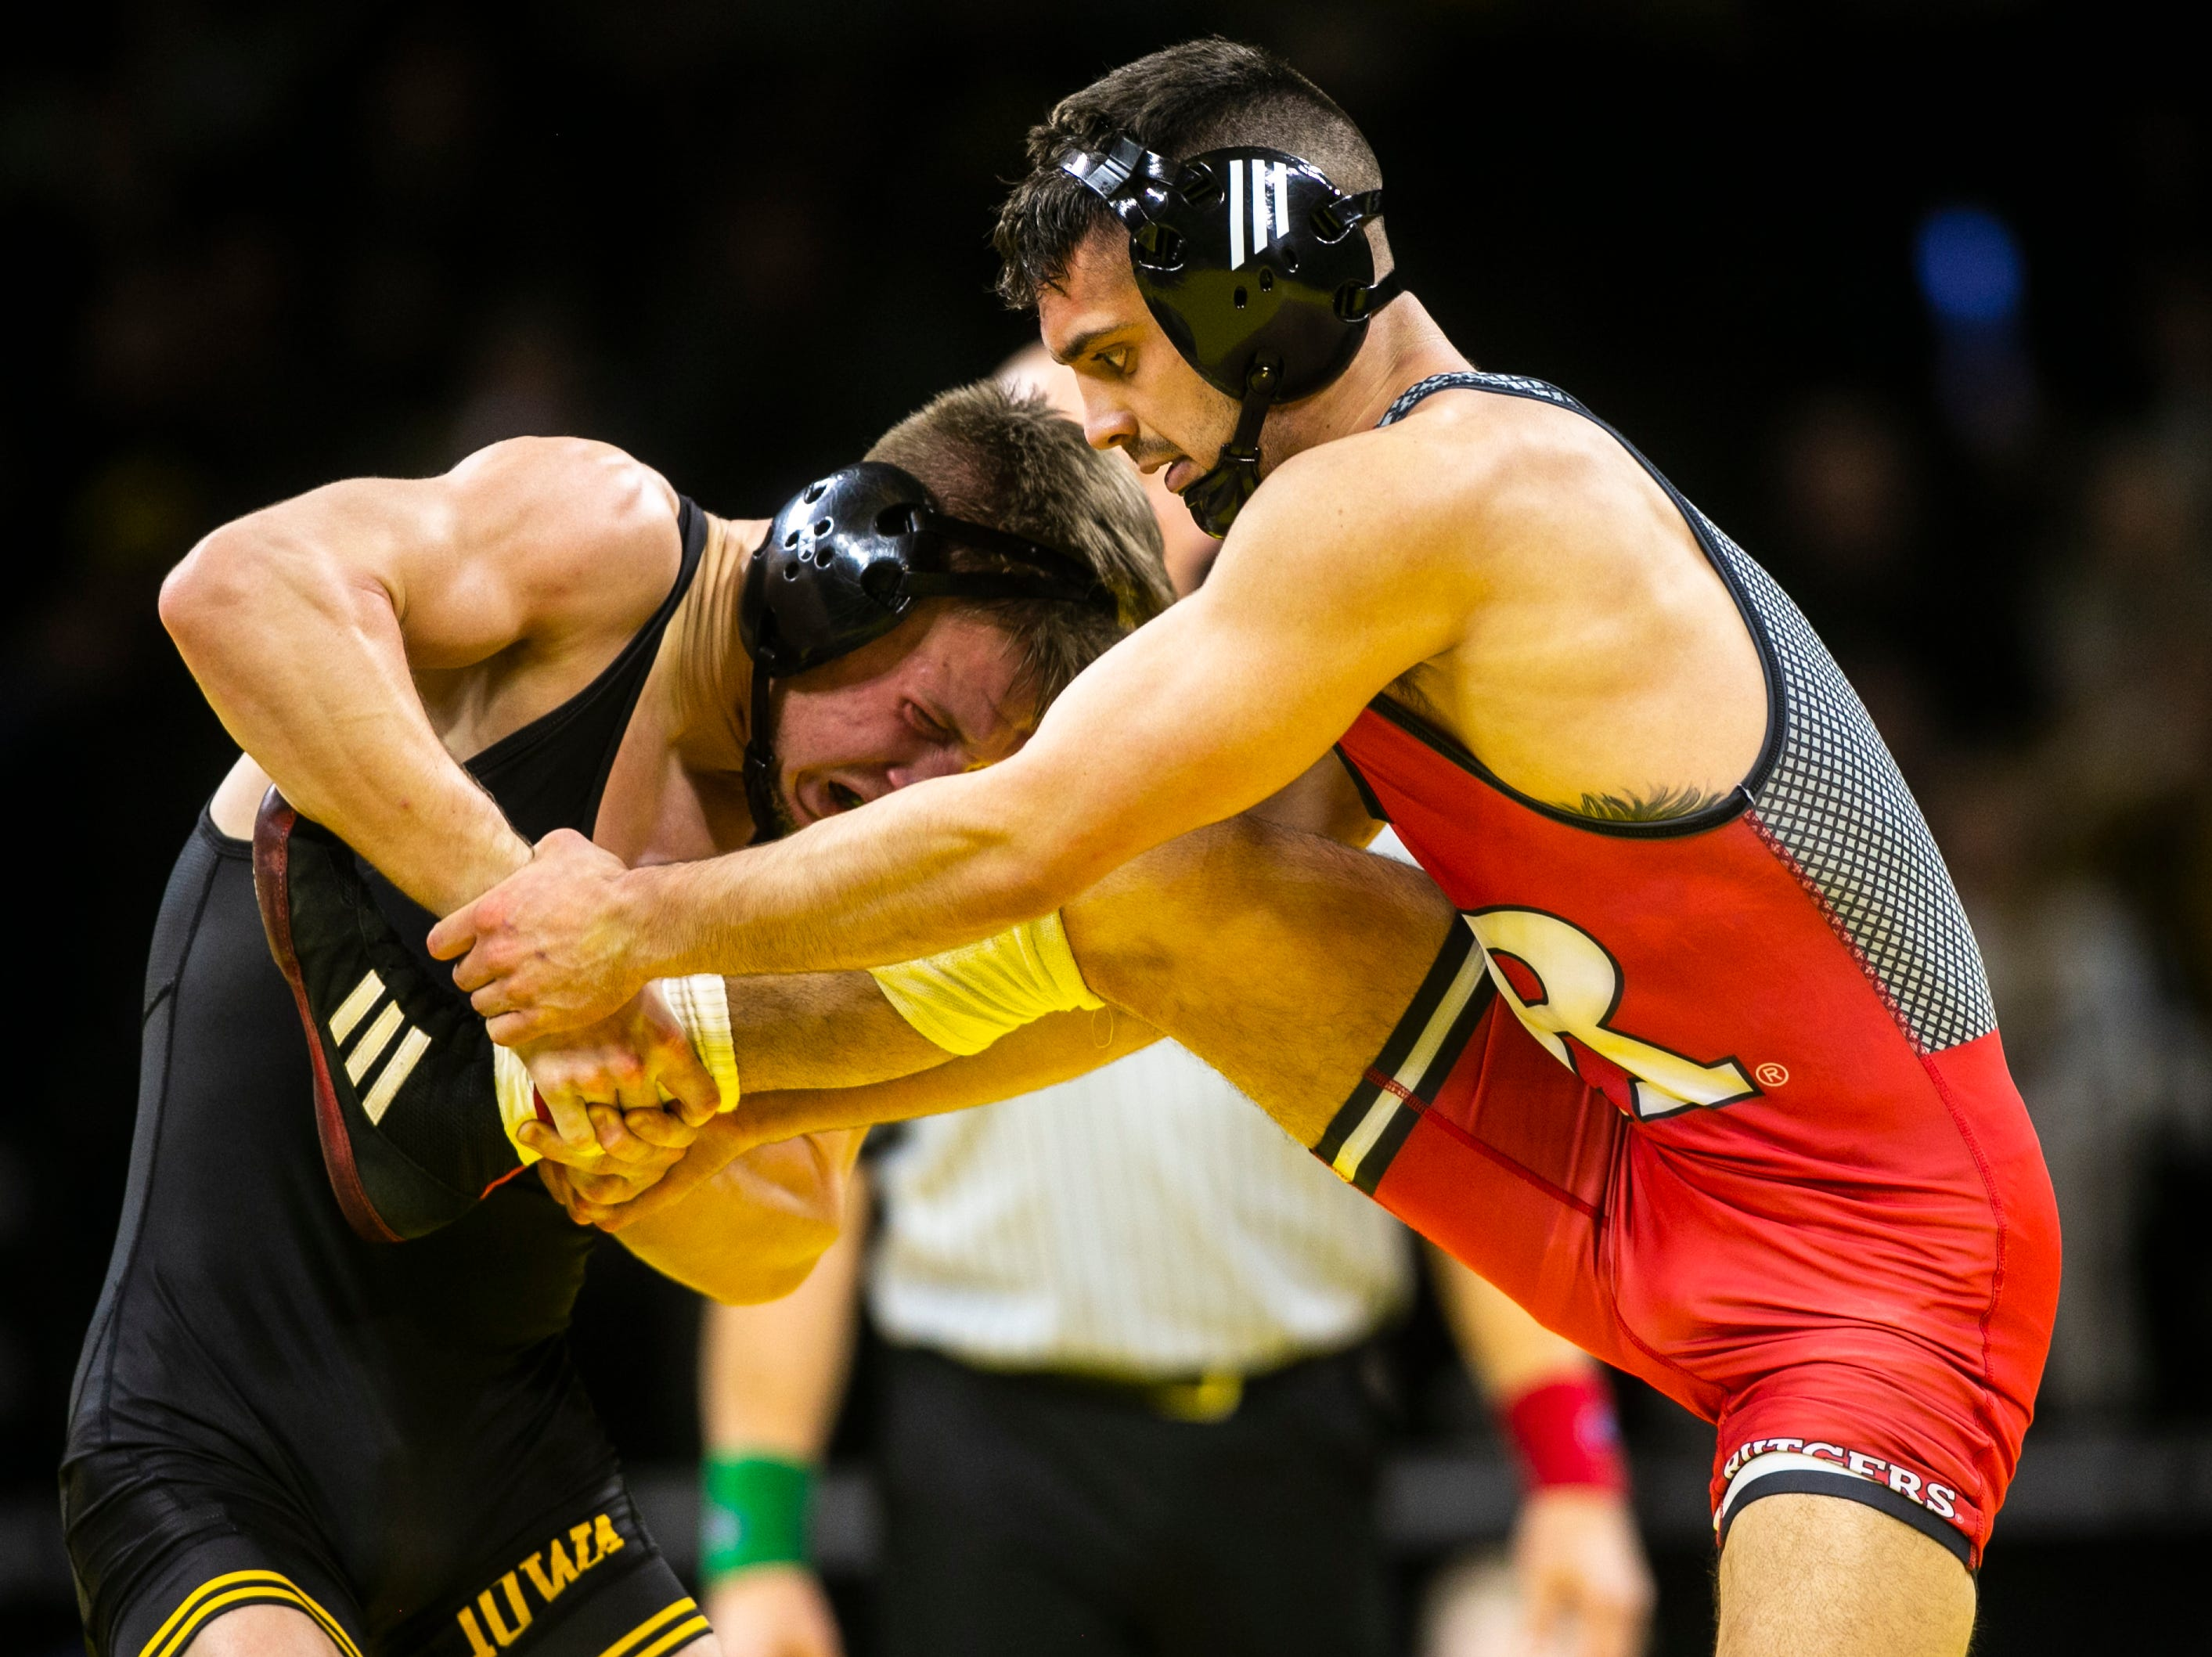 Iowa's Max Murin, left, wrestles Rutgers' Peter Lipari at 141 during a NCAA Big Ten Conference wrestling dual on Friday, Jan. 18, 2019, at Carver-Hawkeye Arena in Iowa City, Iowa.